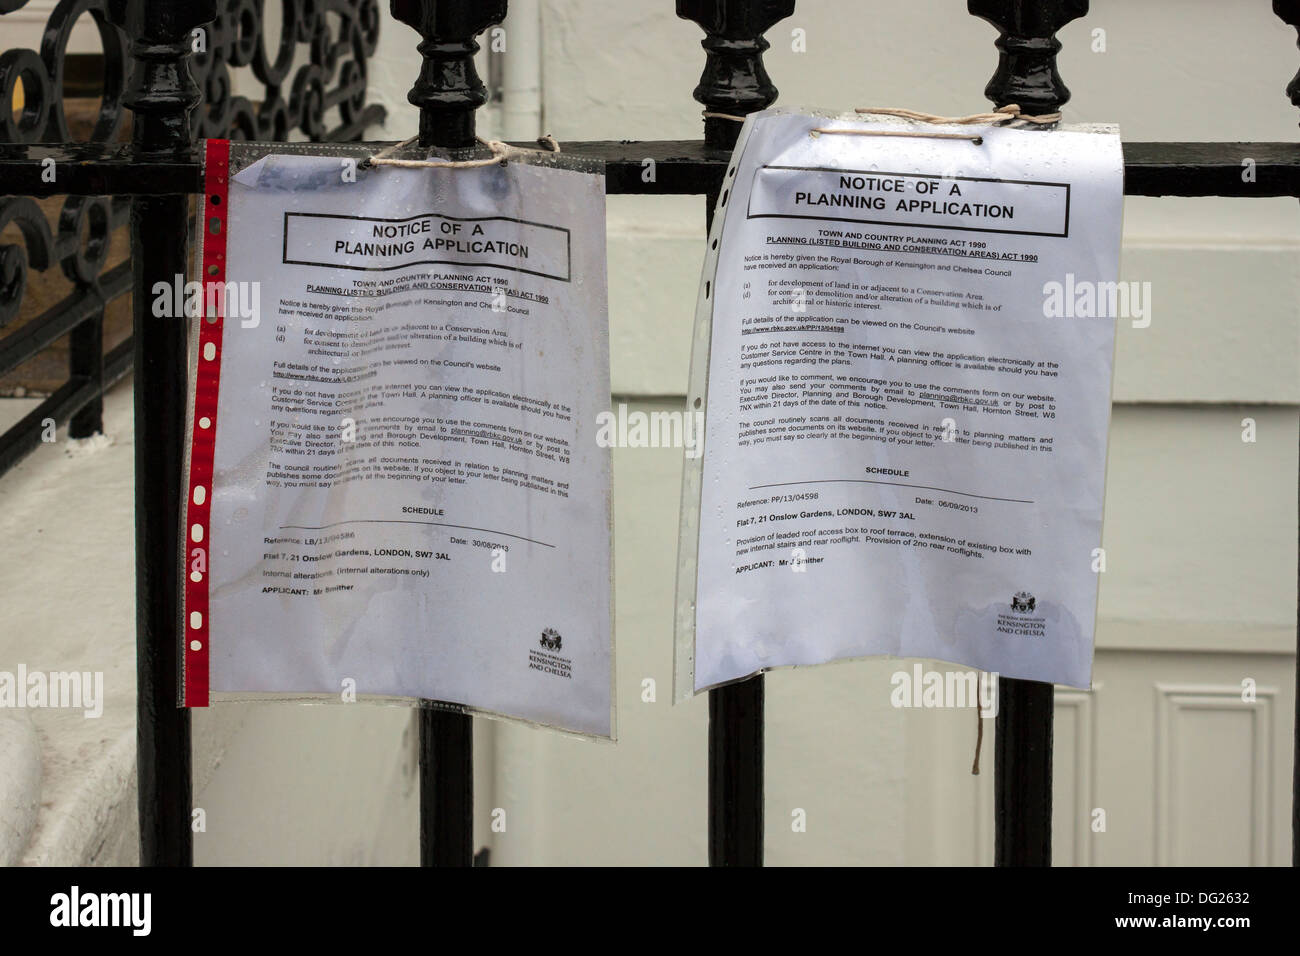 Notice of a Planning Application - Stock Image